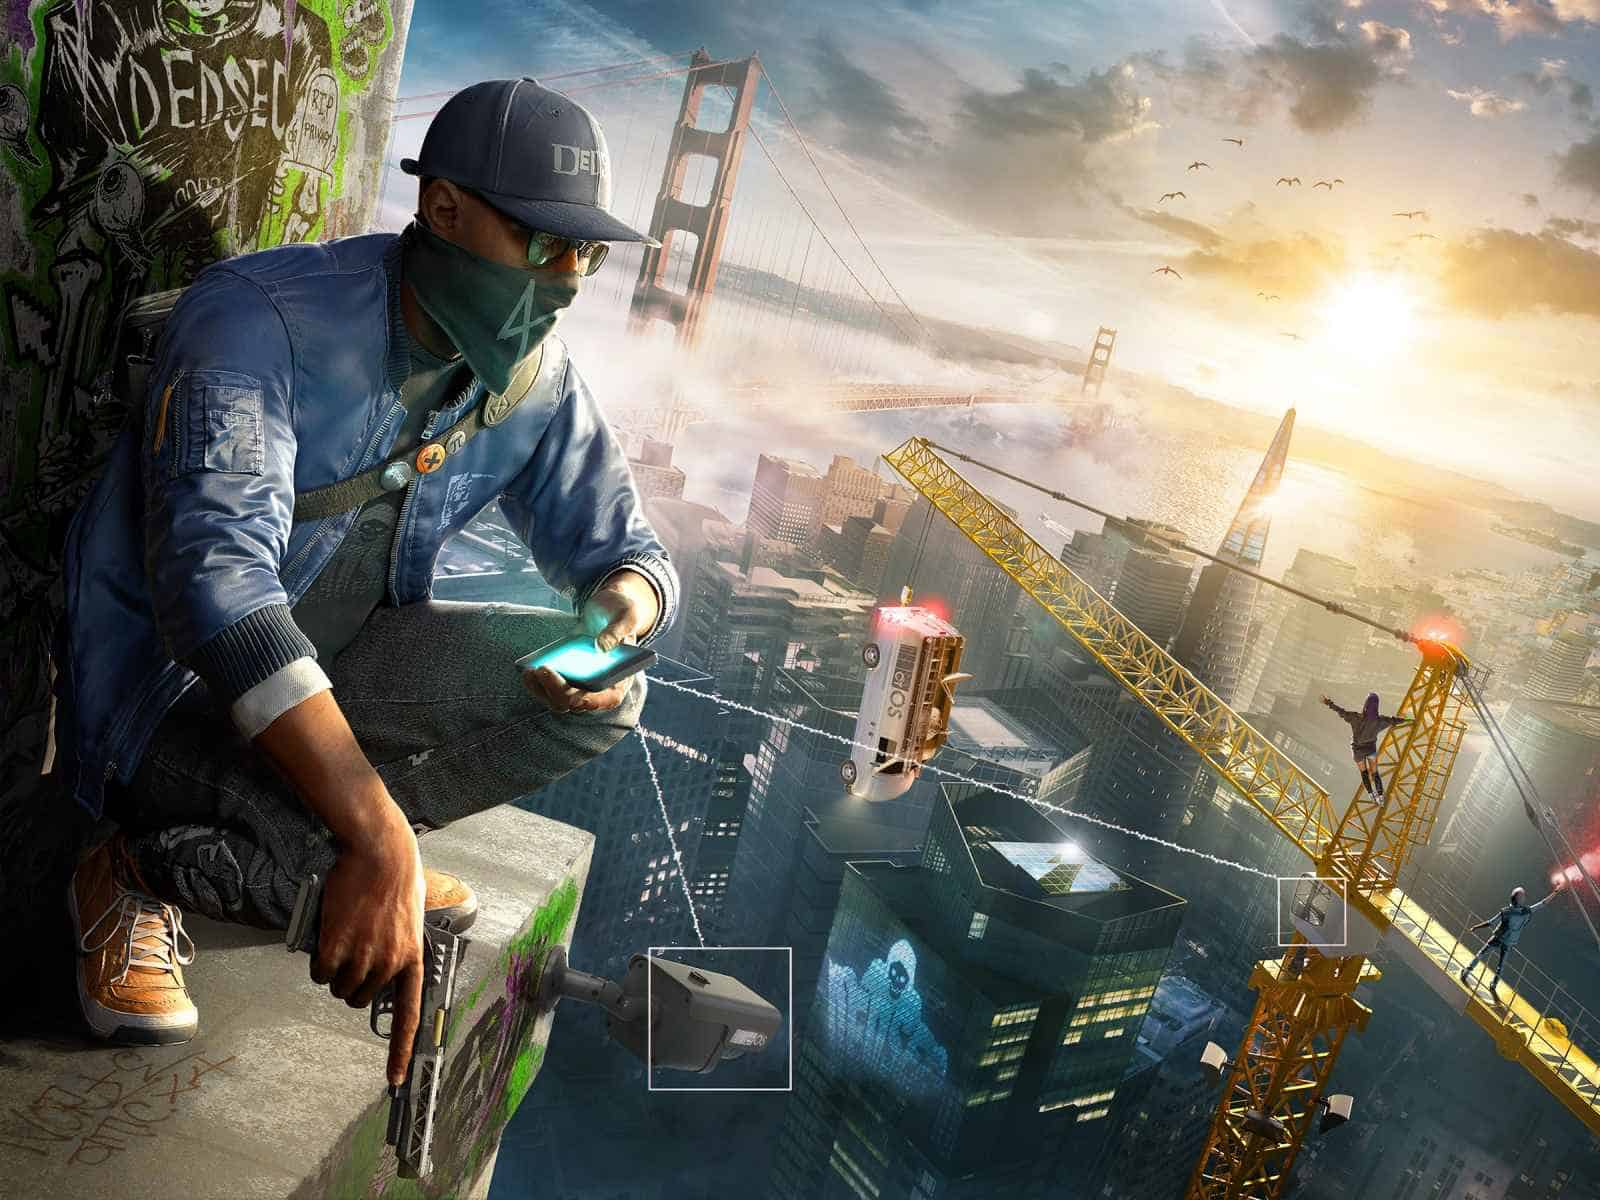 Watch dogs 2, Aiden pearce, Character, City 1600×1200 HD Background